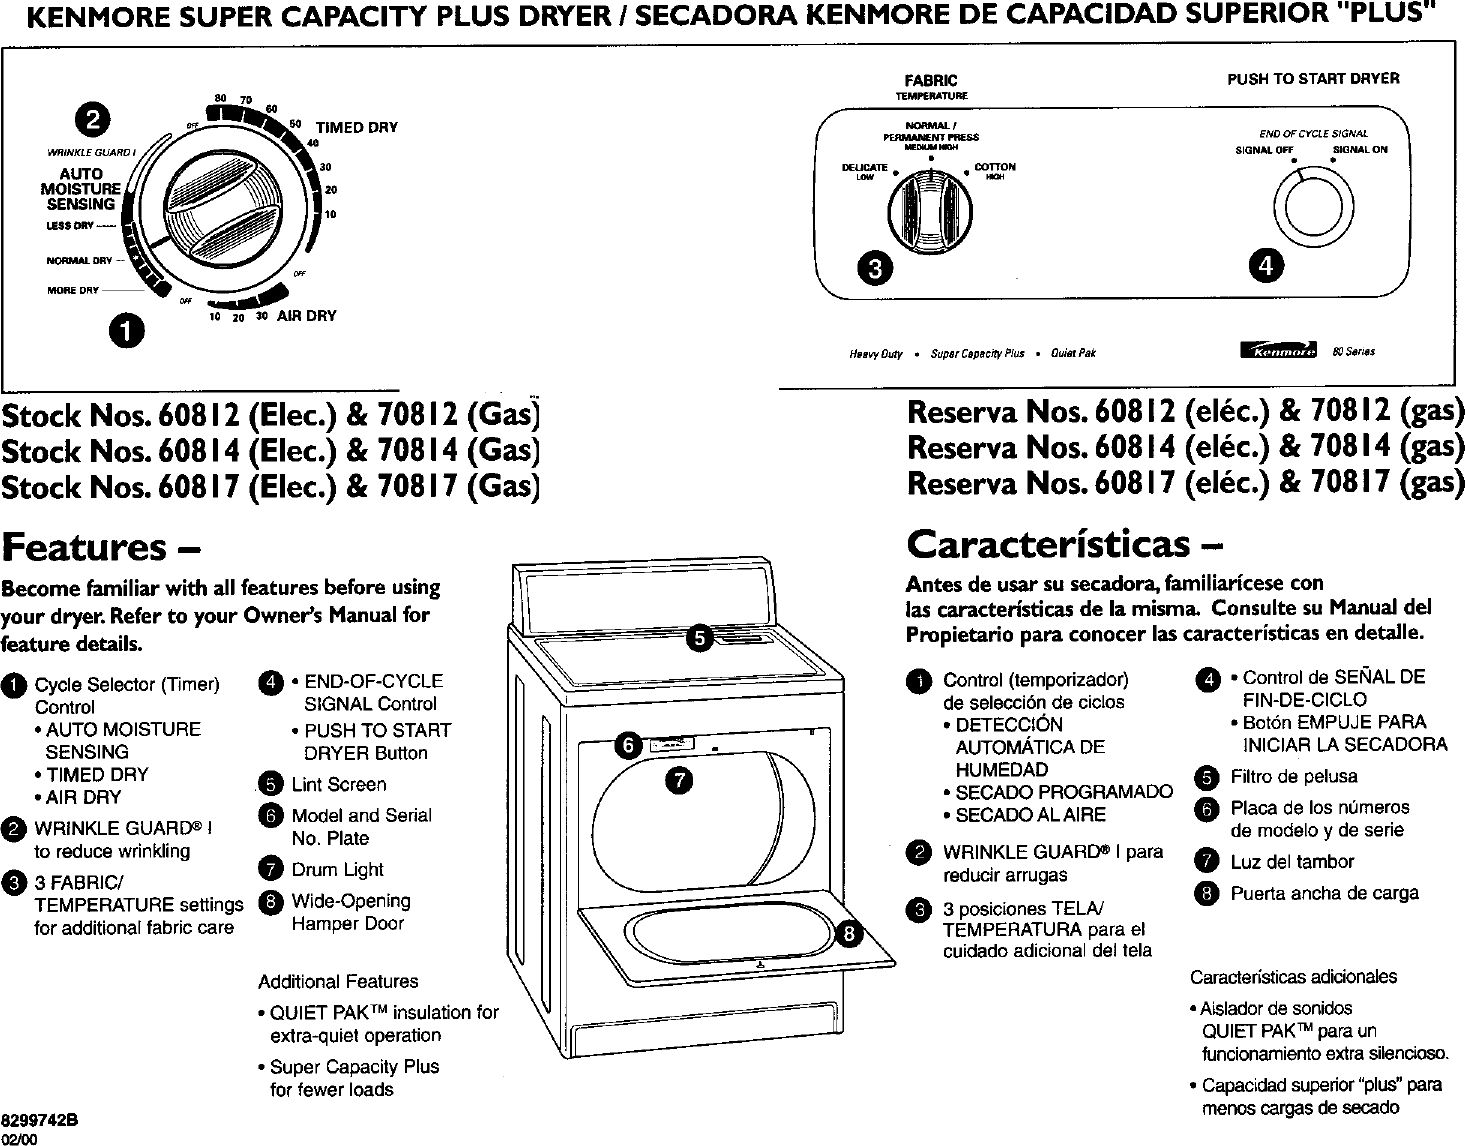 Kenmore 11060812990 User Manual Electric Dryer Manuals And Guides Air Schematic L0050204